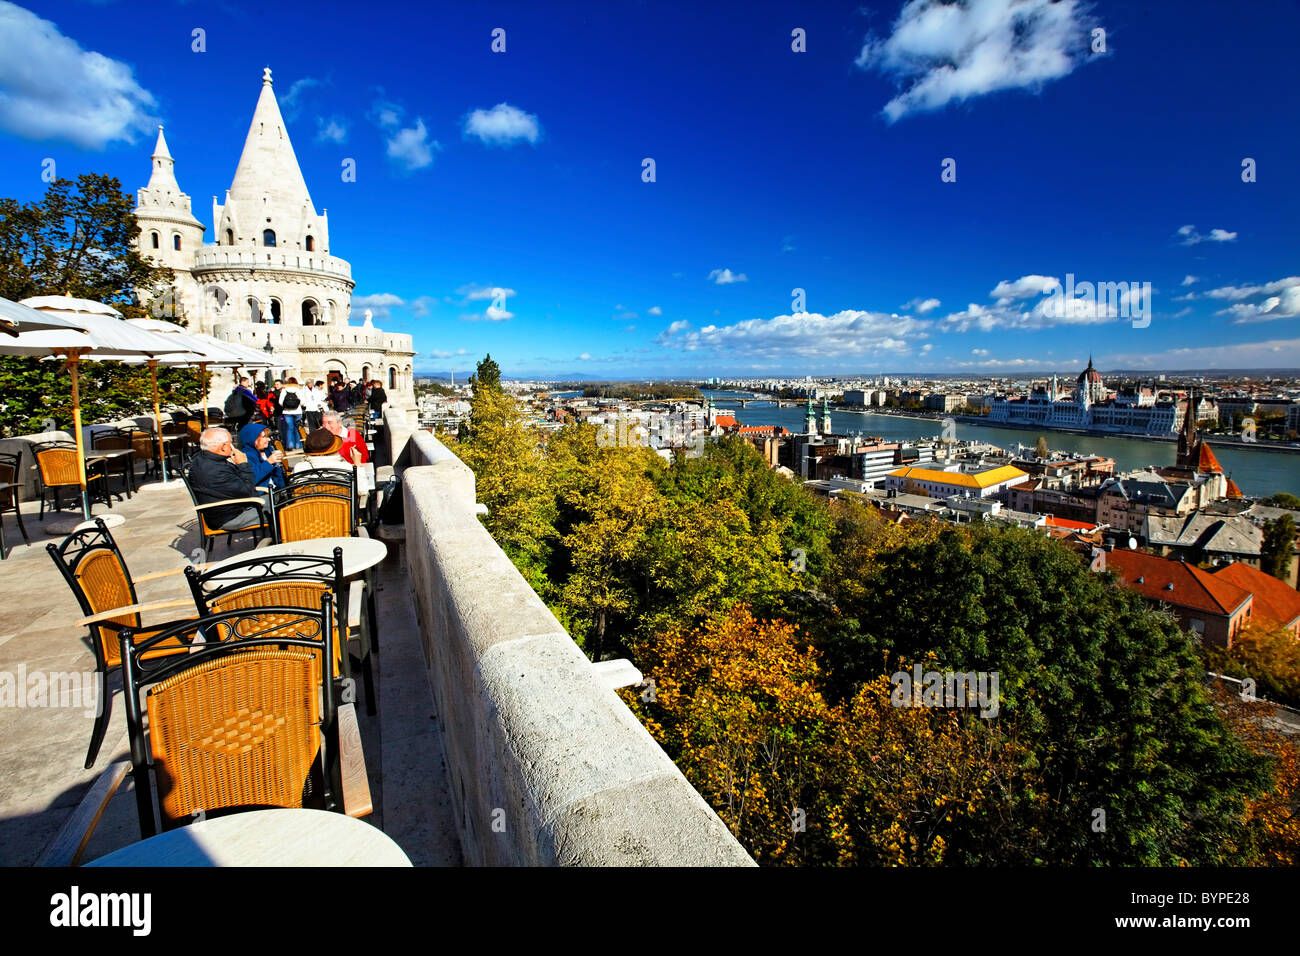 View from the Fisherman's Bastion, Budapest, Hungary - Stock Image